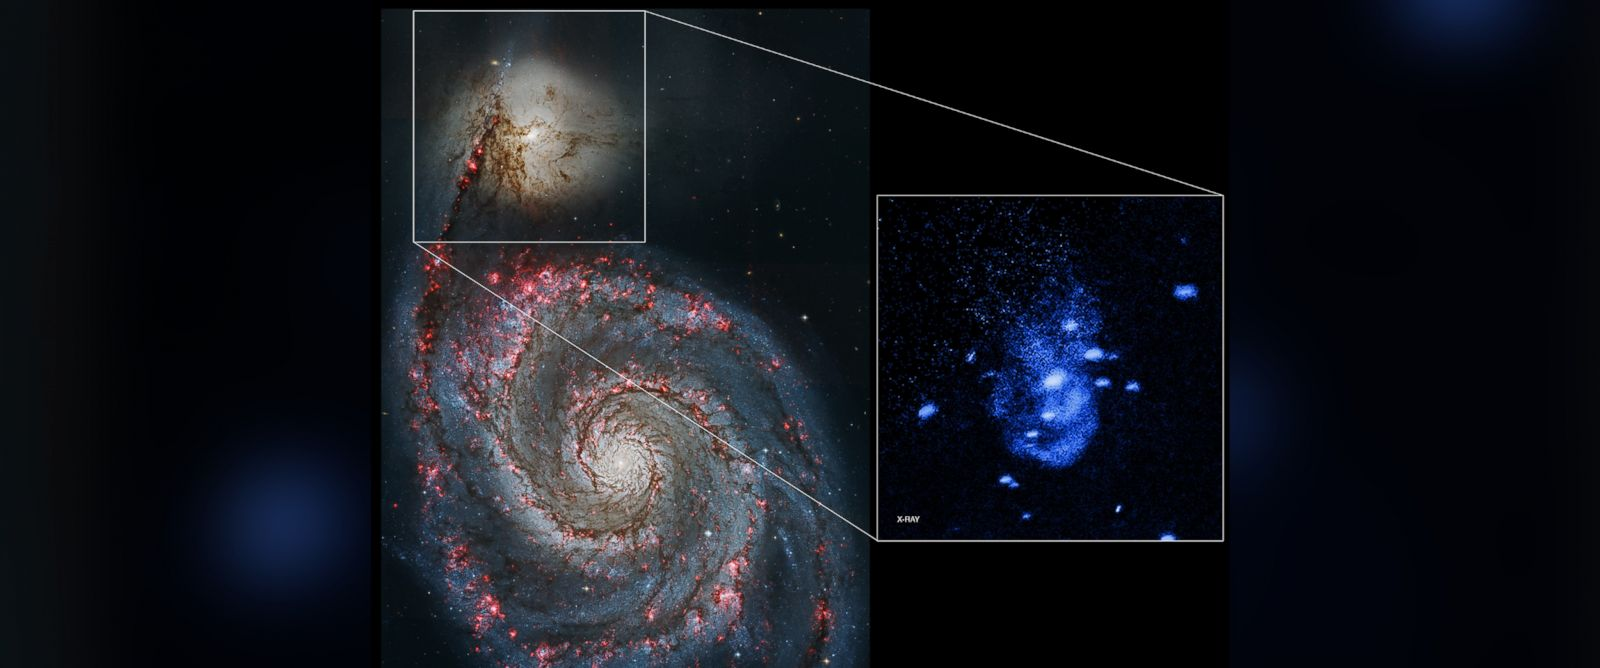 PHOTO: Astronomers have used NASA's Chandra X-ray Observatory to discover one of the nearest supermassive black holes that is currently undergoing powerful outbursts.